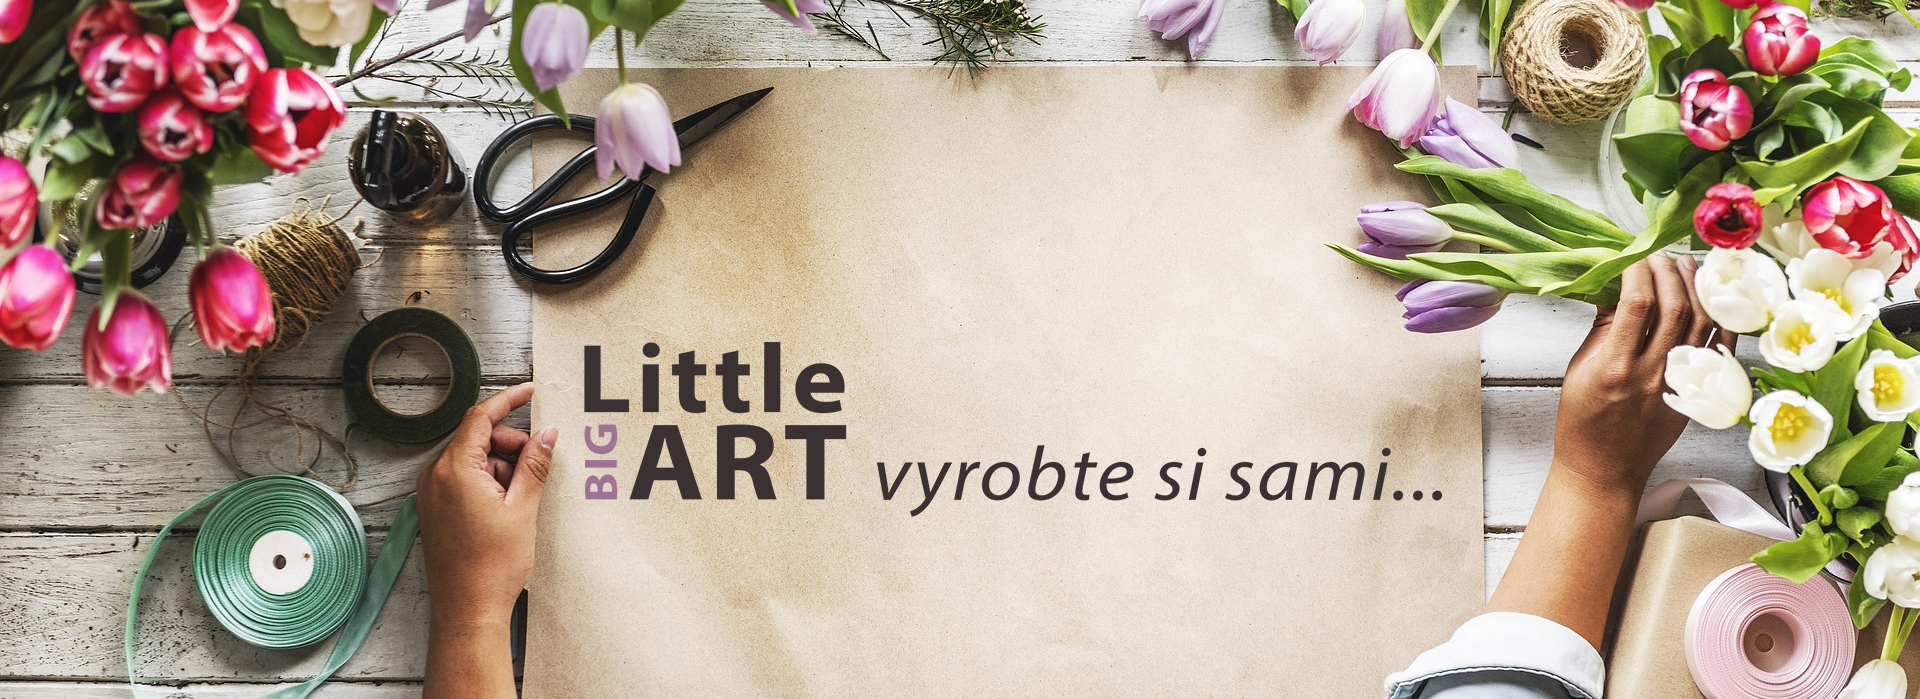 Little BIG ART - Vyrobte si sami